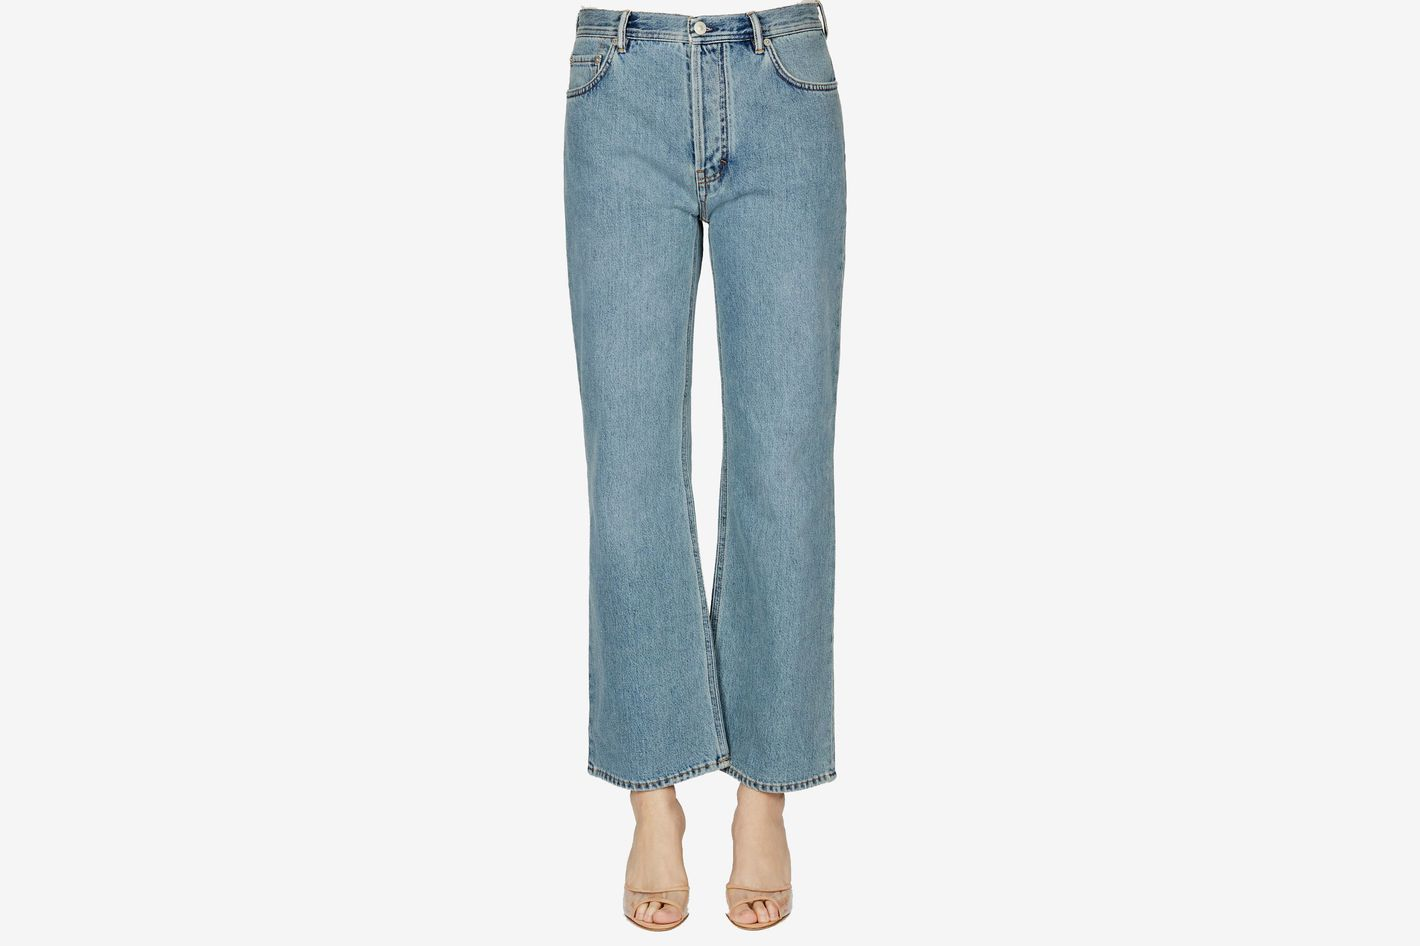 Acne Studios Taguhy Straight Denim Jean